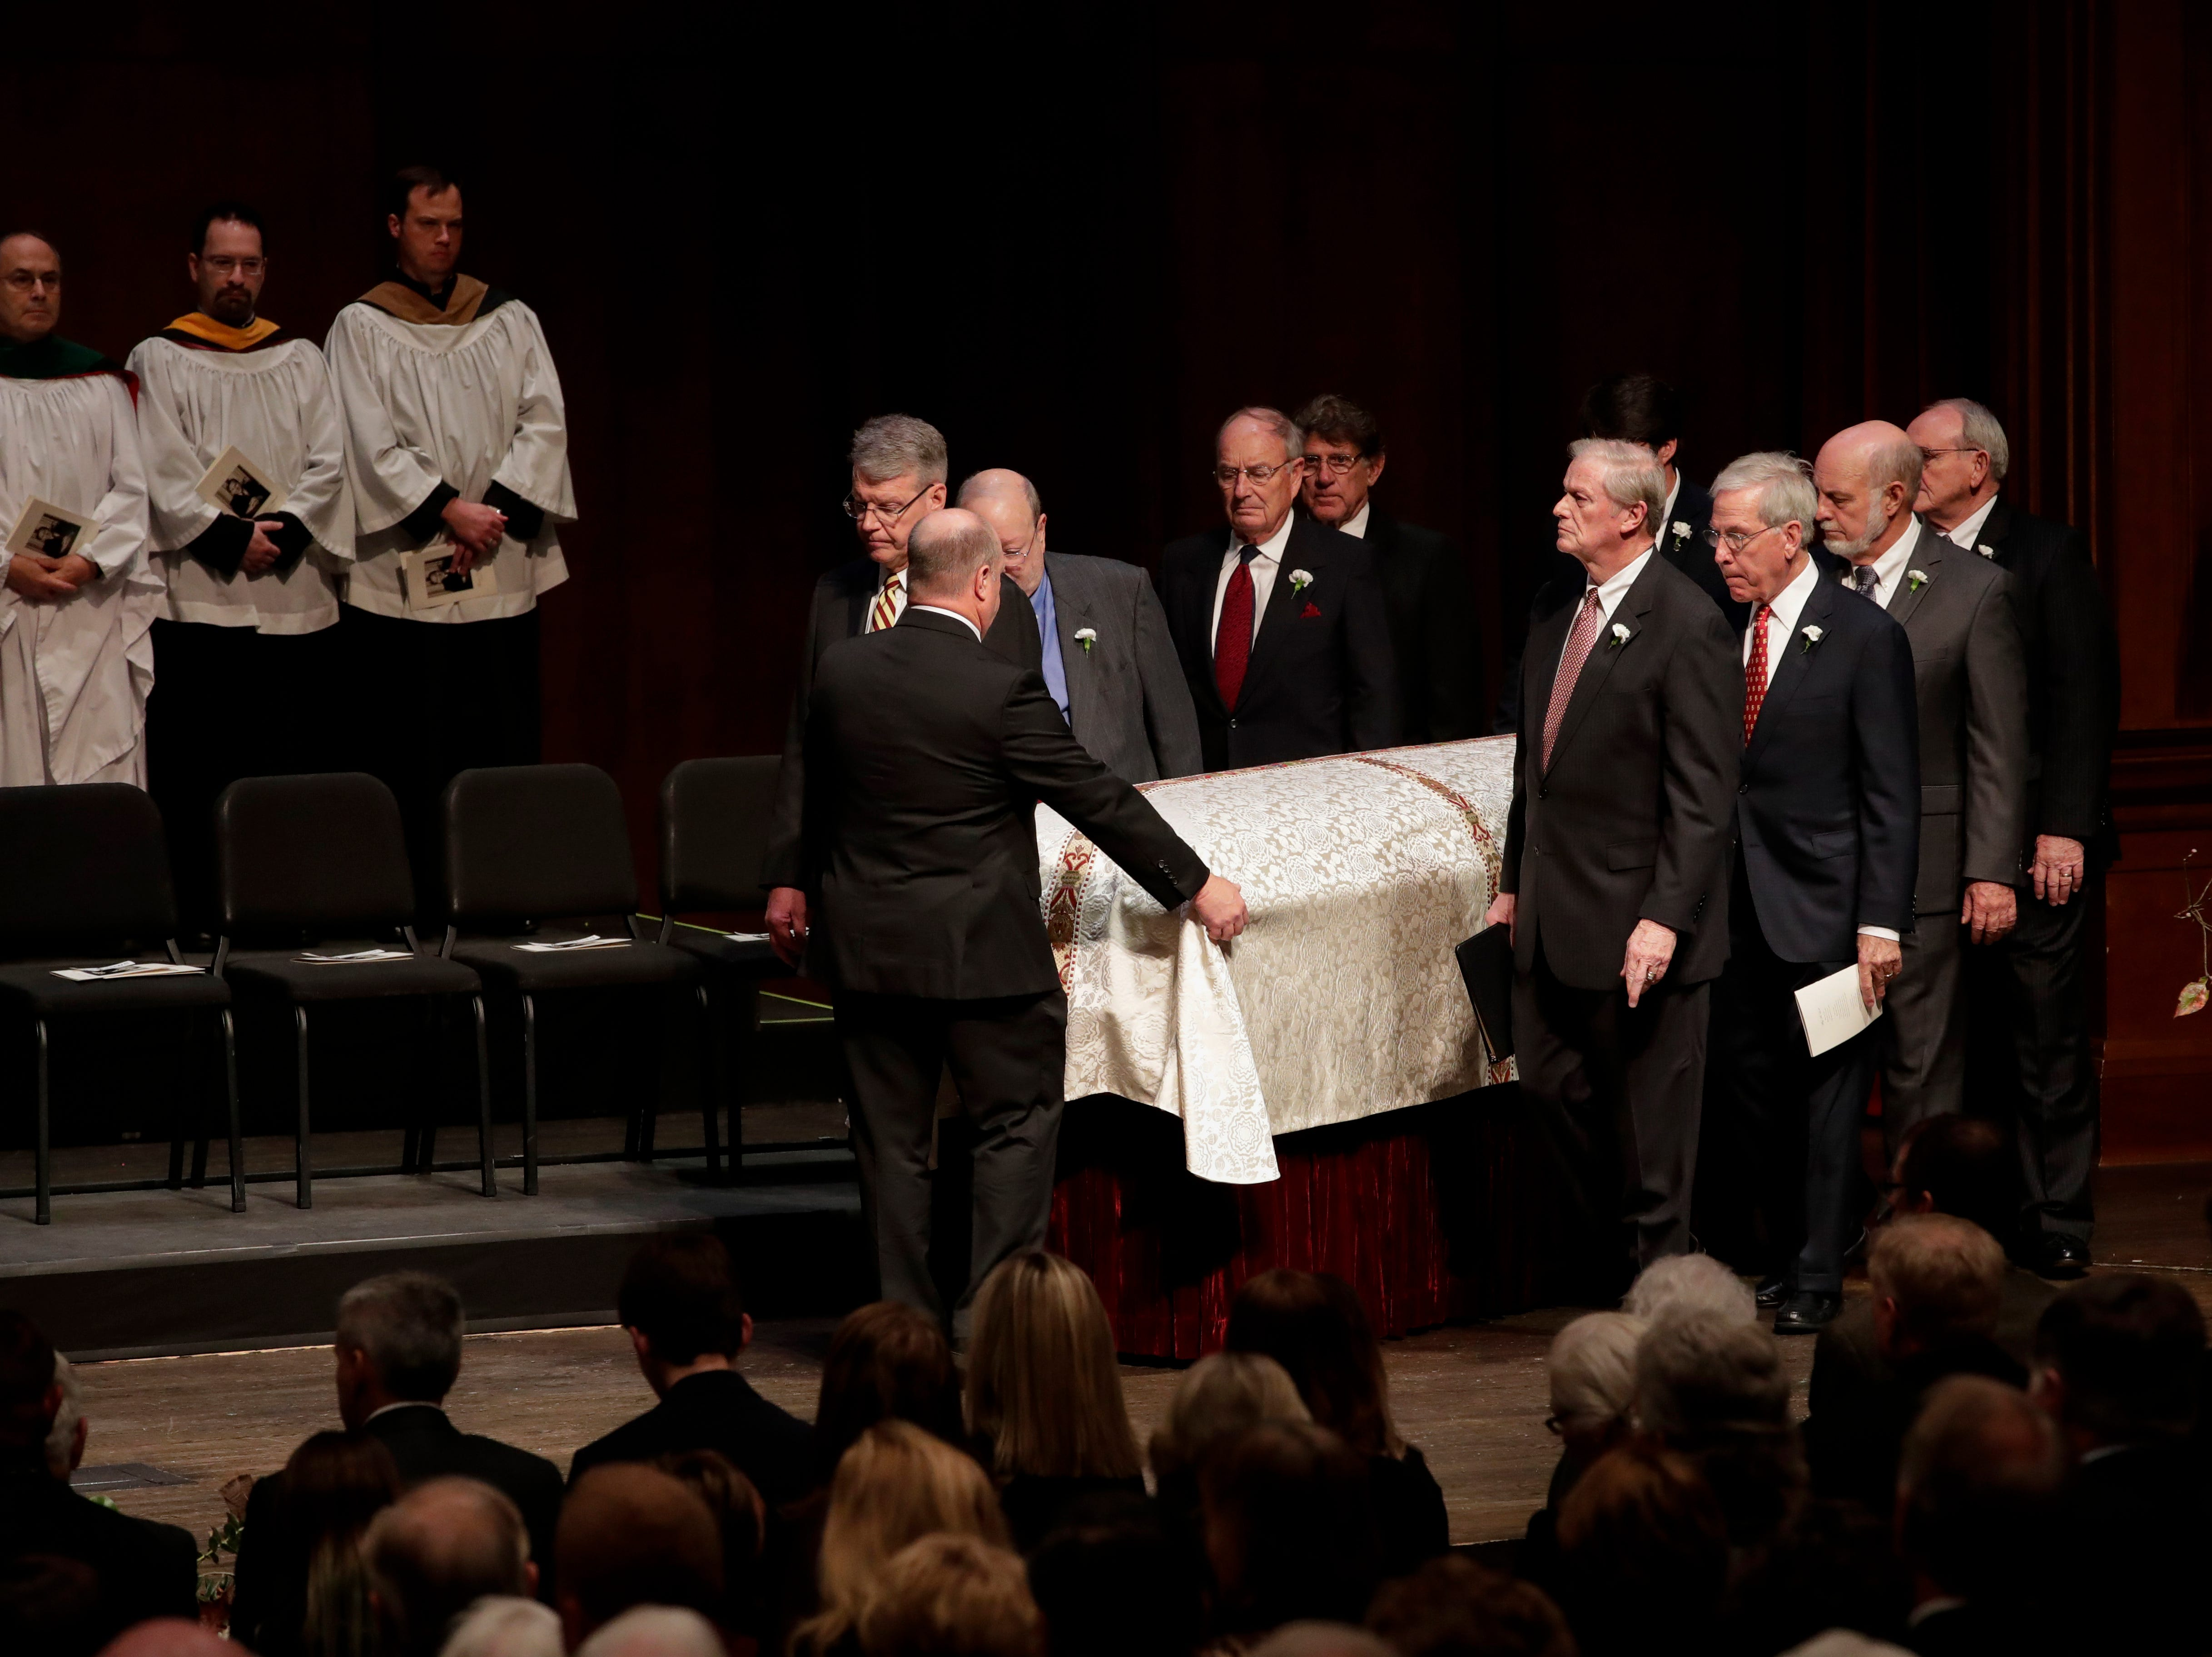 Florida State University President Emeritus T.K. Wetherell's casket is brought into Ruby Diamond Concert Hall by his pall bearers during his funeral service held at Ruby Diamond Concert Hall Friday, Dec. 21, 2018.